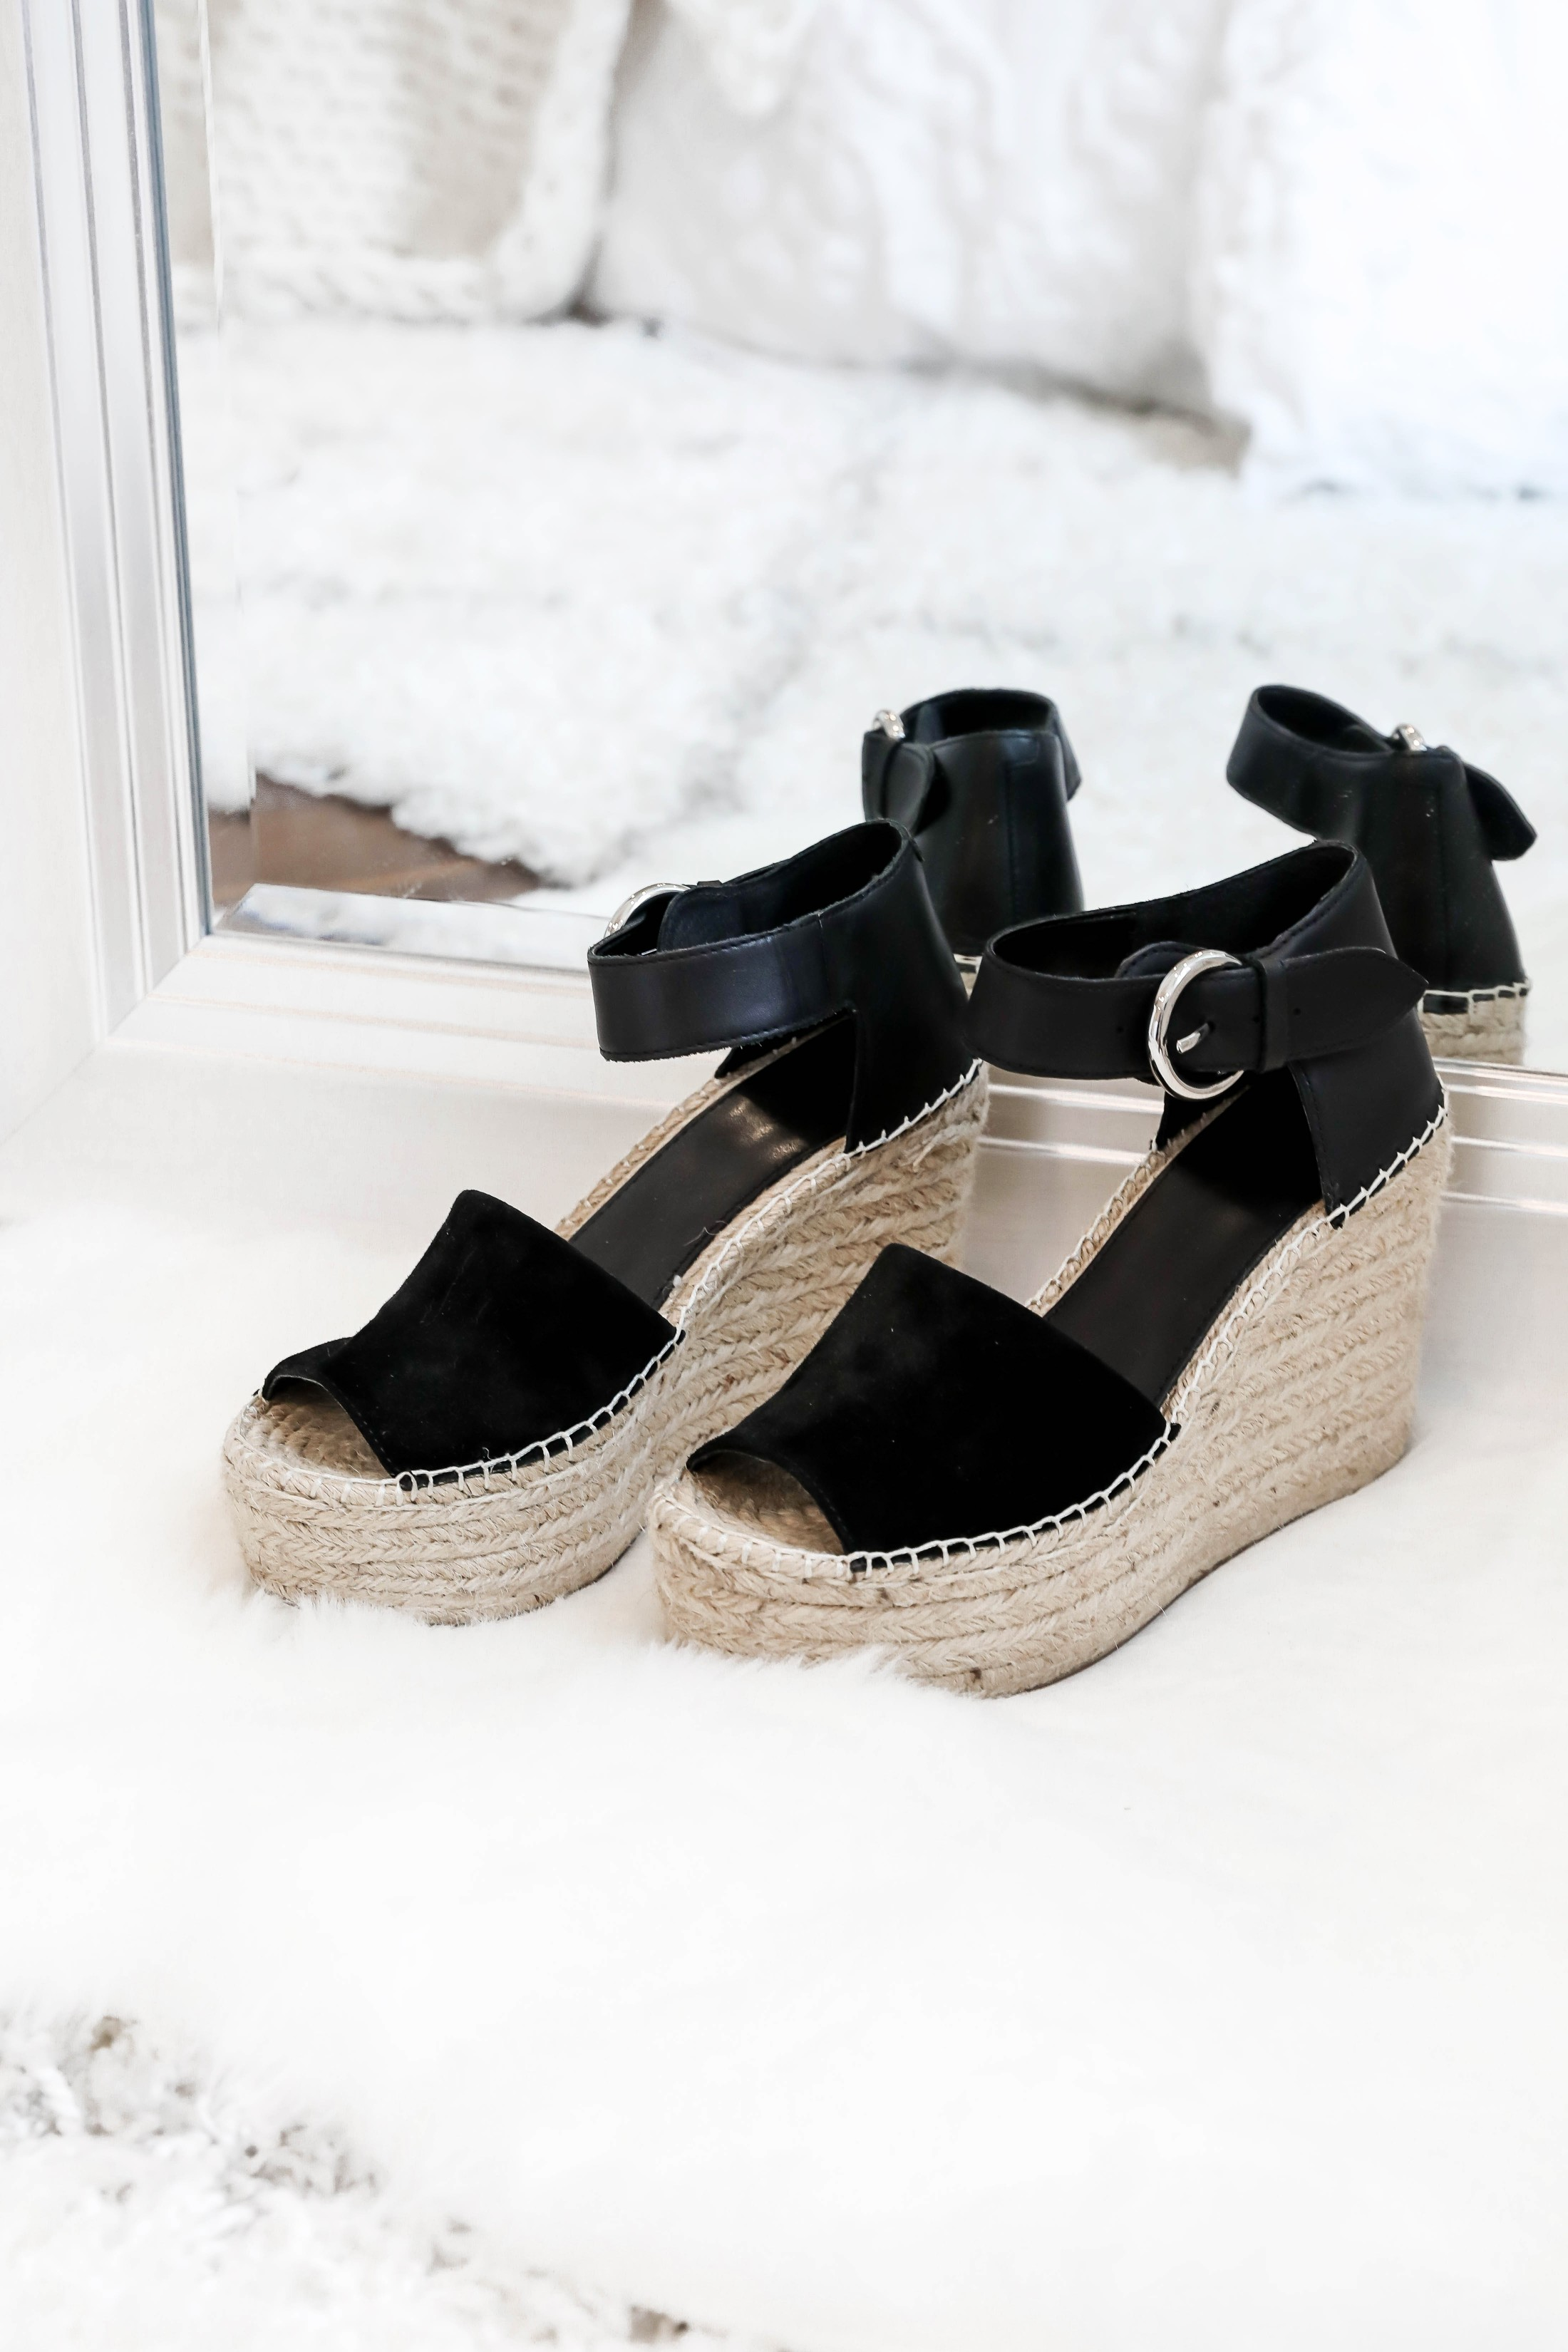 Spring Shoe Haul 2019! | Daily Dose of